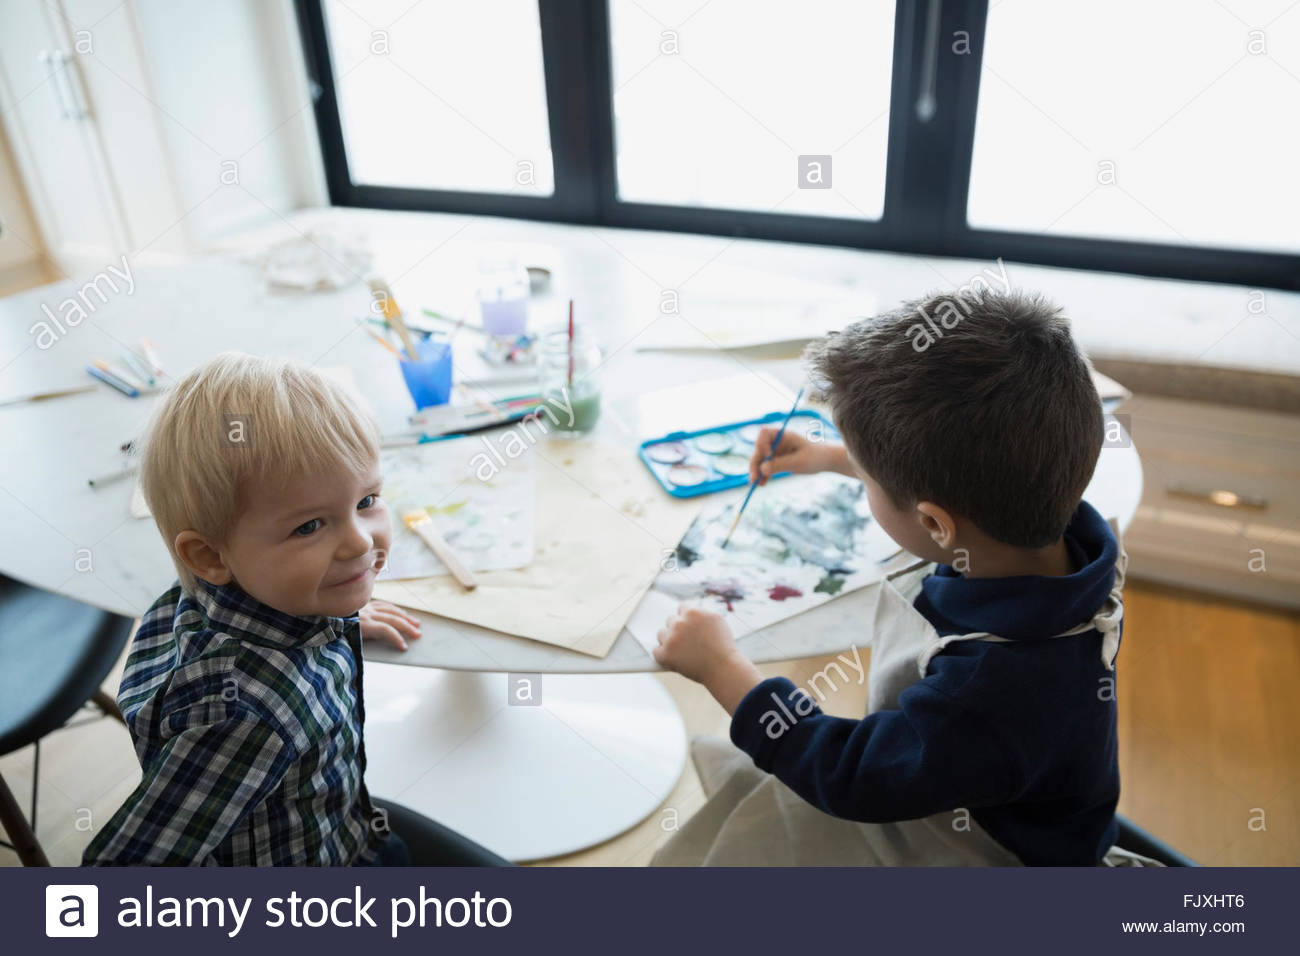 Brothers watercolor painting at table - Stock Image